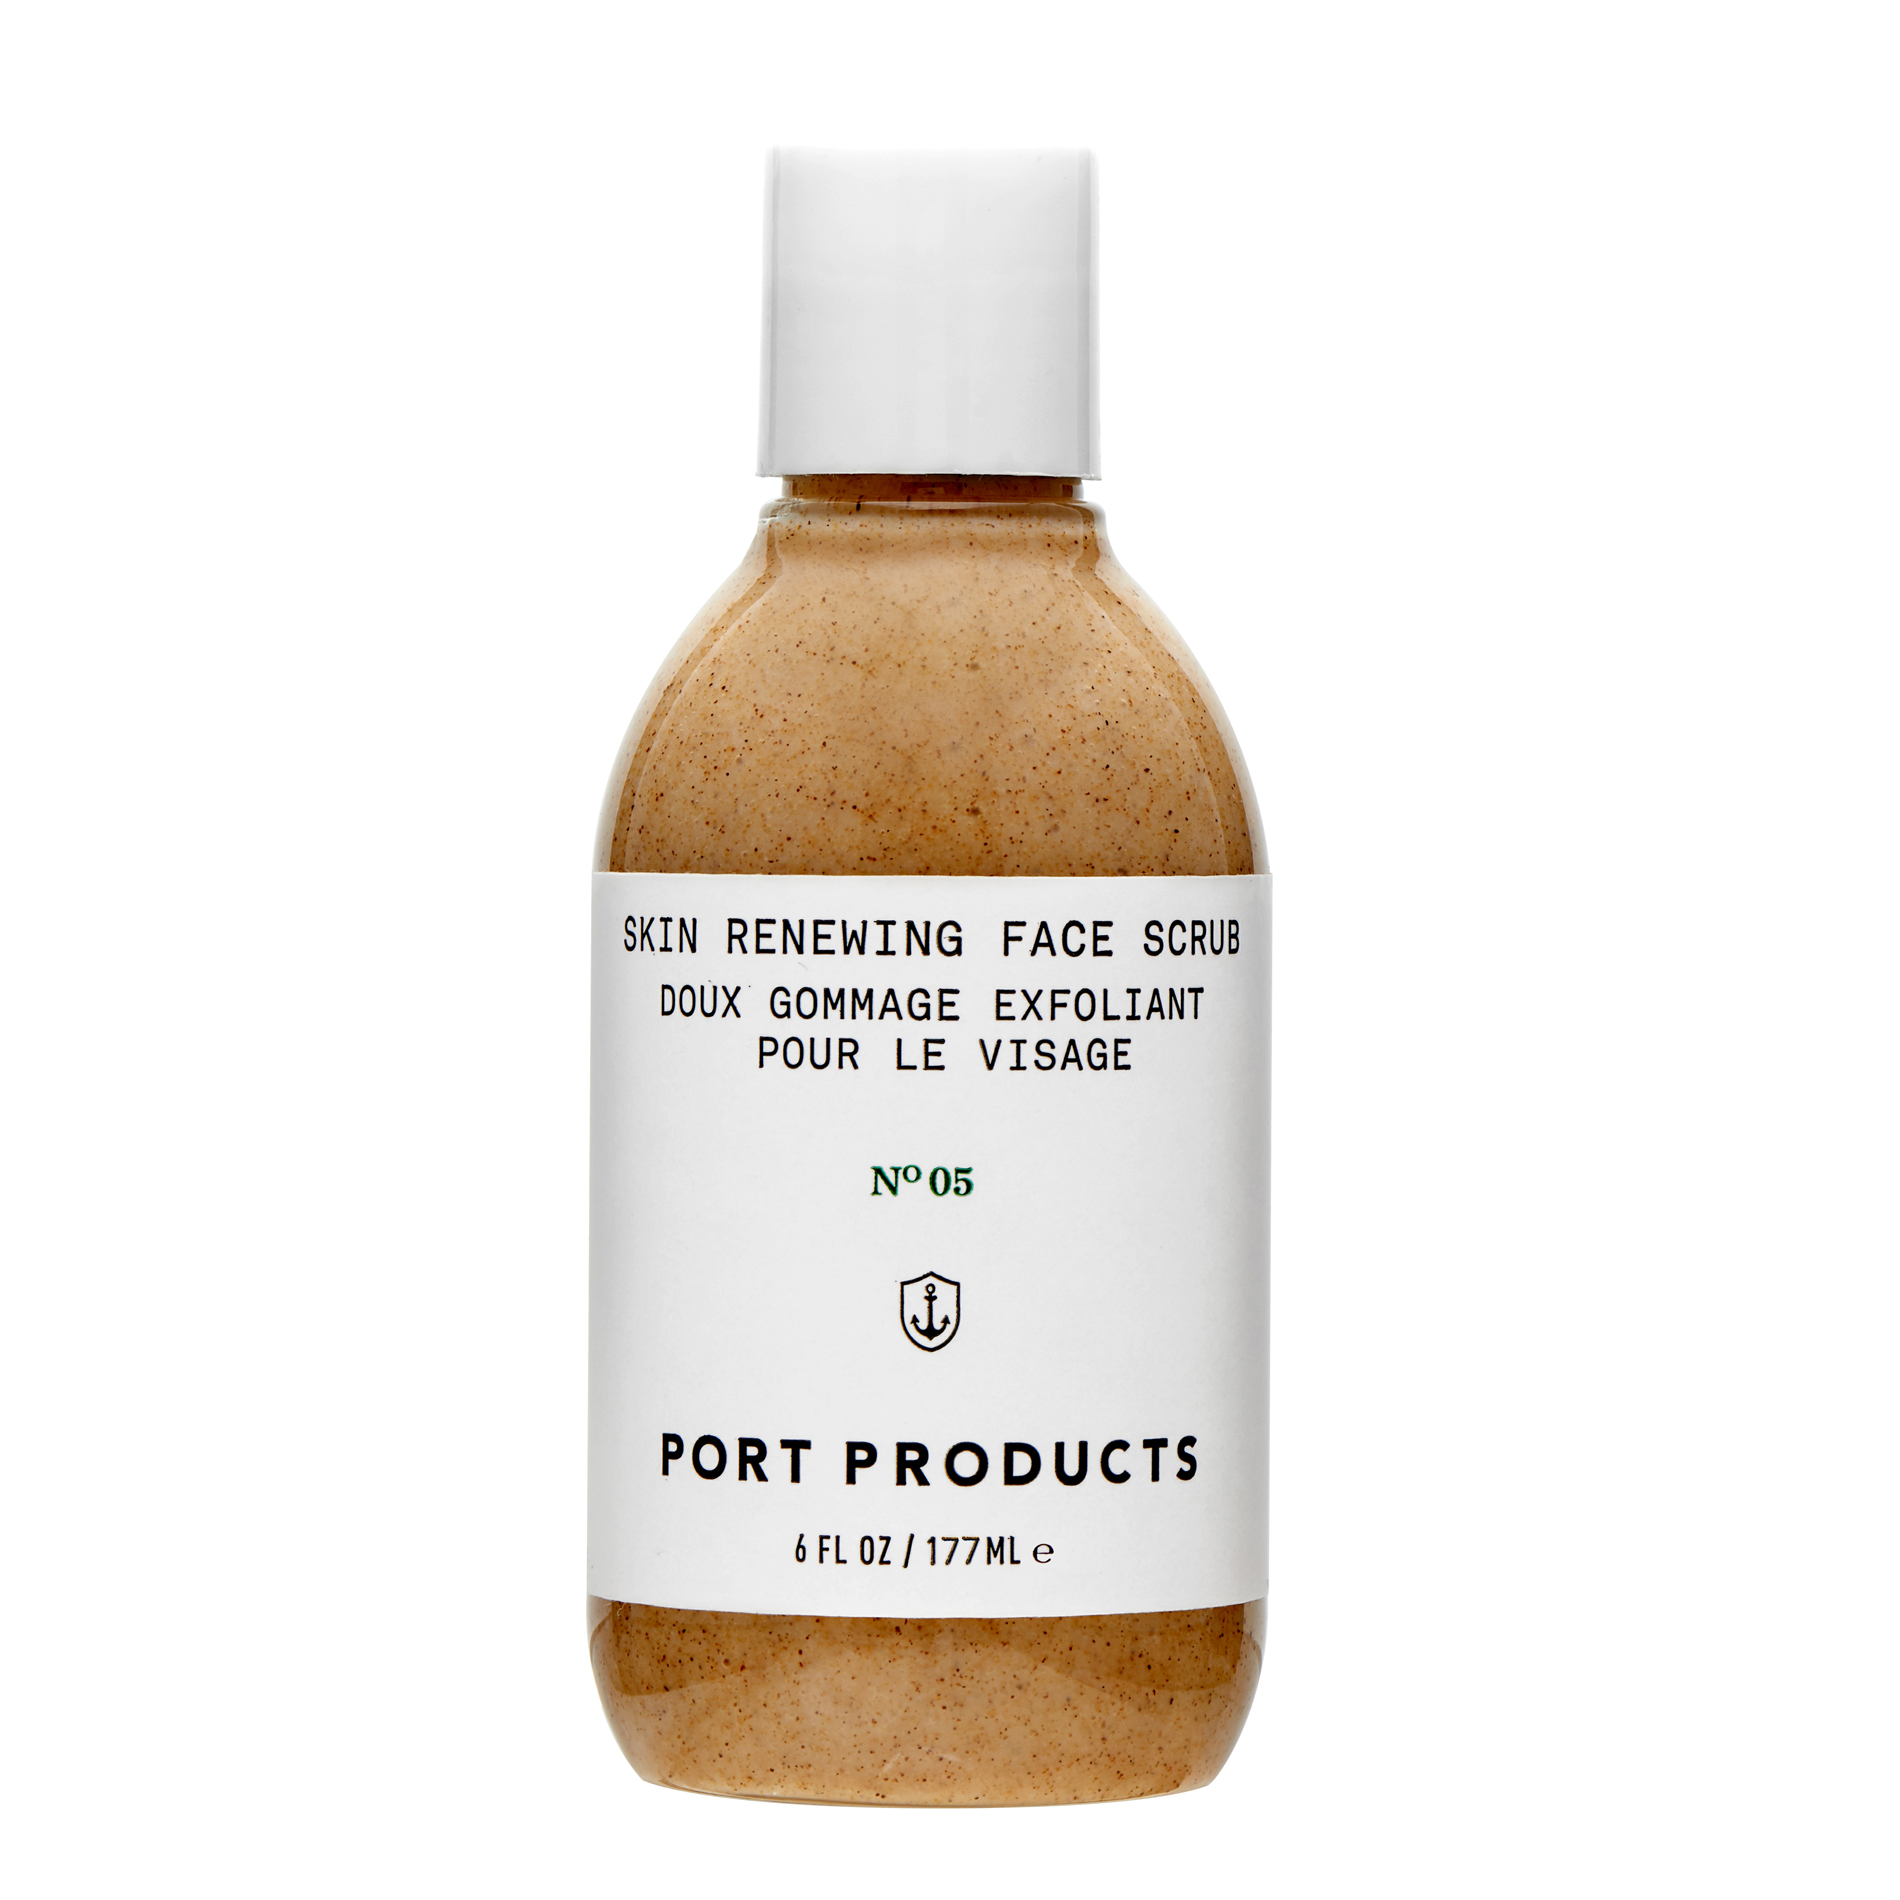 Port Products Skin Renewing Face Scrub (Image: Port Products)